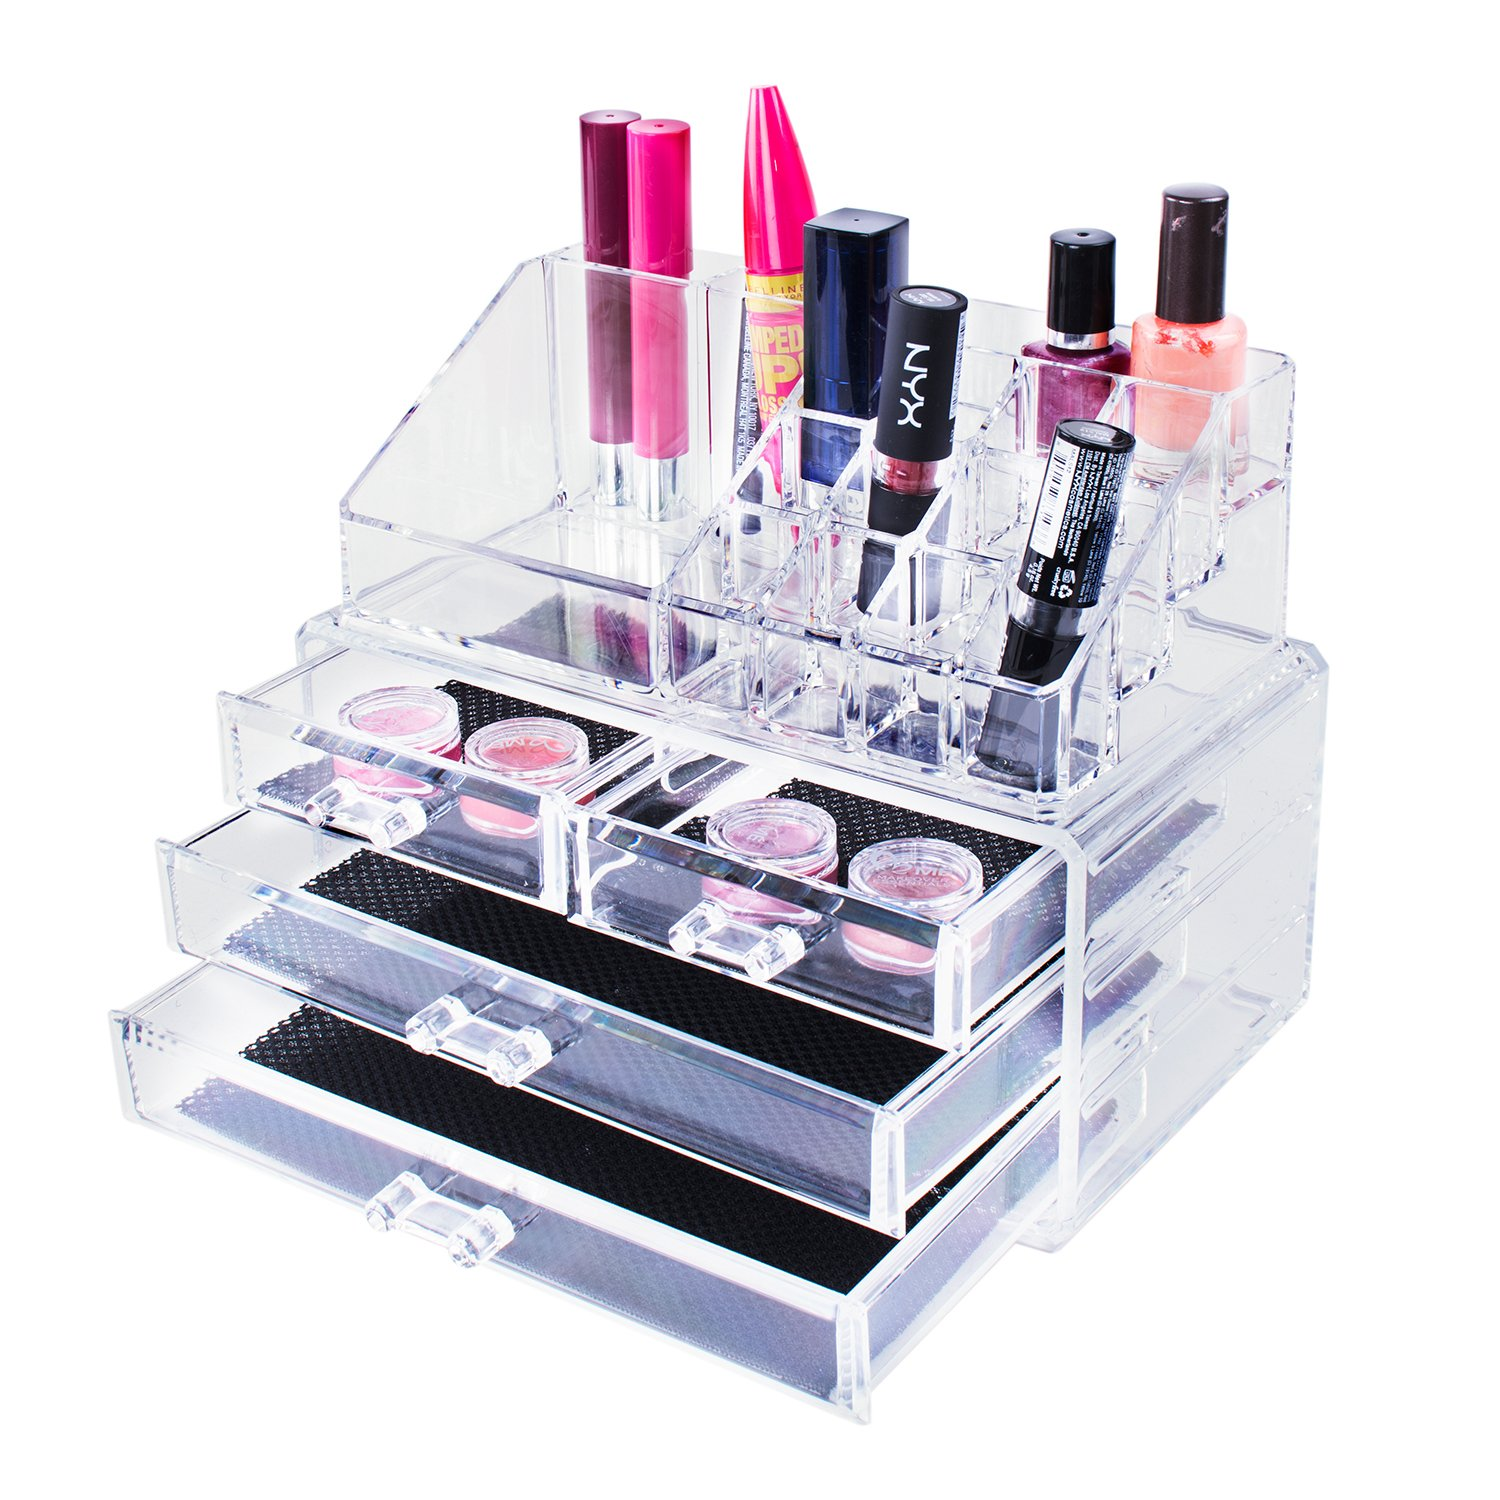 Transparent Cosmetic Makeup Acrylic Organizer Drawers Set for Lipstick, Brushes, Bottles, Jewelry and More. Clear Case Display Rack Storage Holder 2 Piece Set